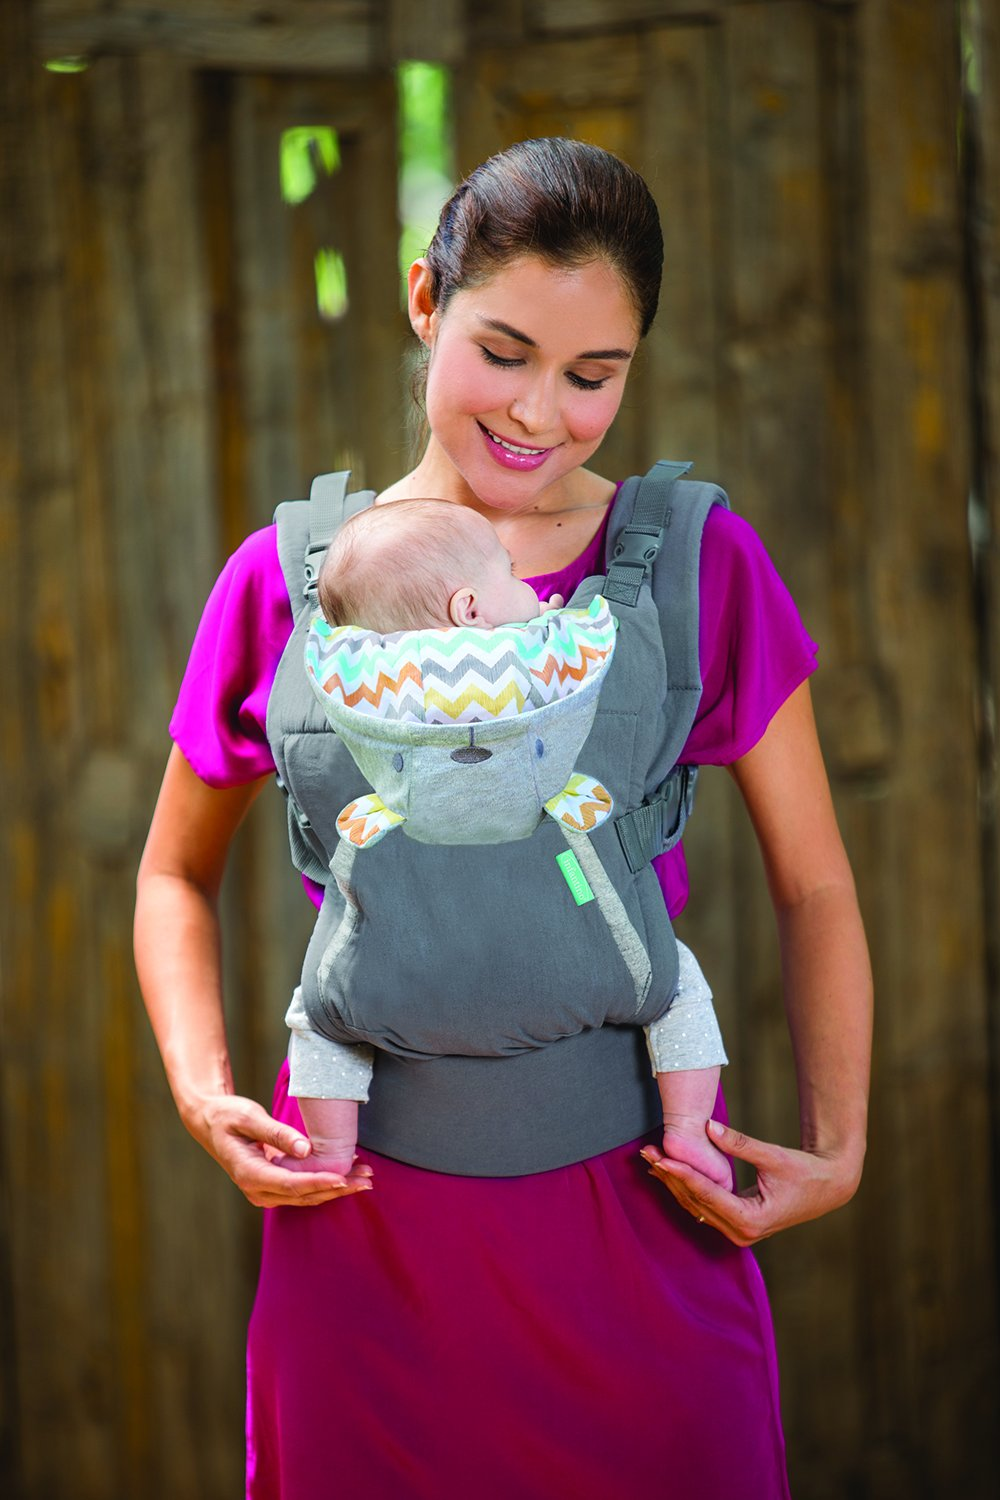 Infantino Cuddle Up Ergonomic Hoodie Carrier, Grey Infantino Fully safety tested Carries children from 12-40lbs (5.4 - 18.1 kgs) 10